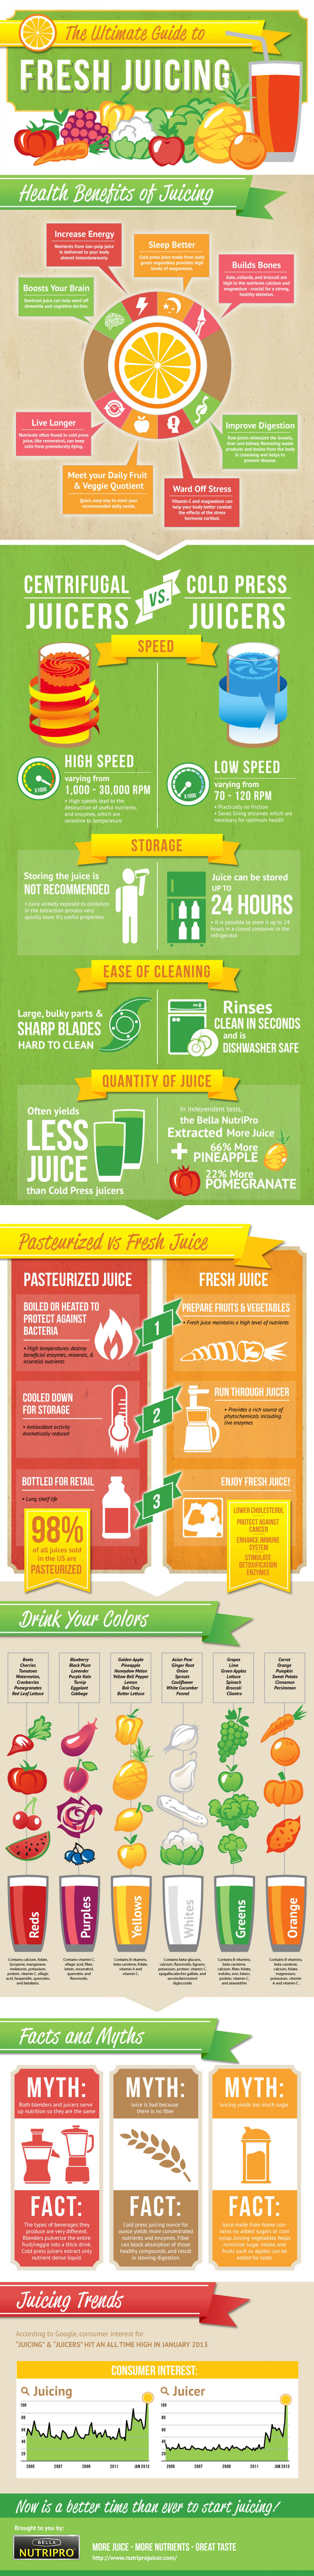 The Ultimate Guide to Fresh Juicing Infographic